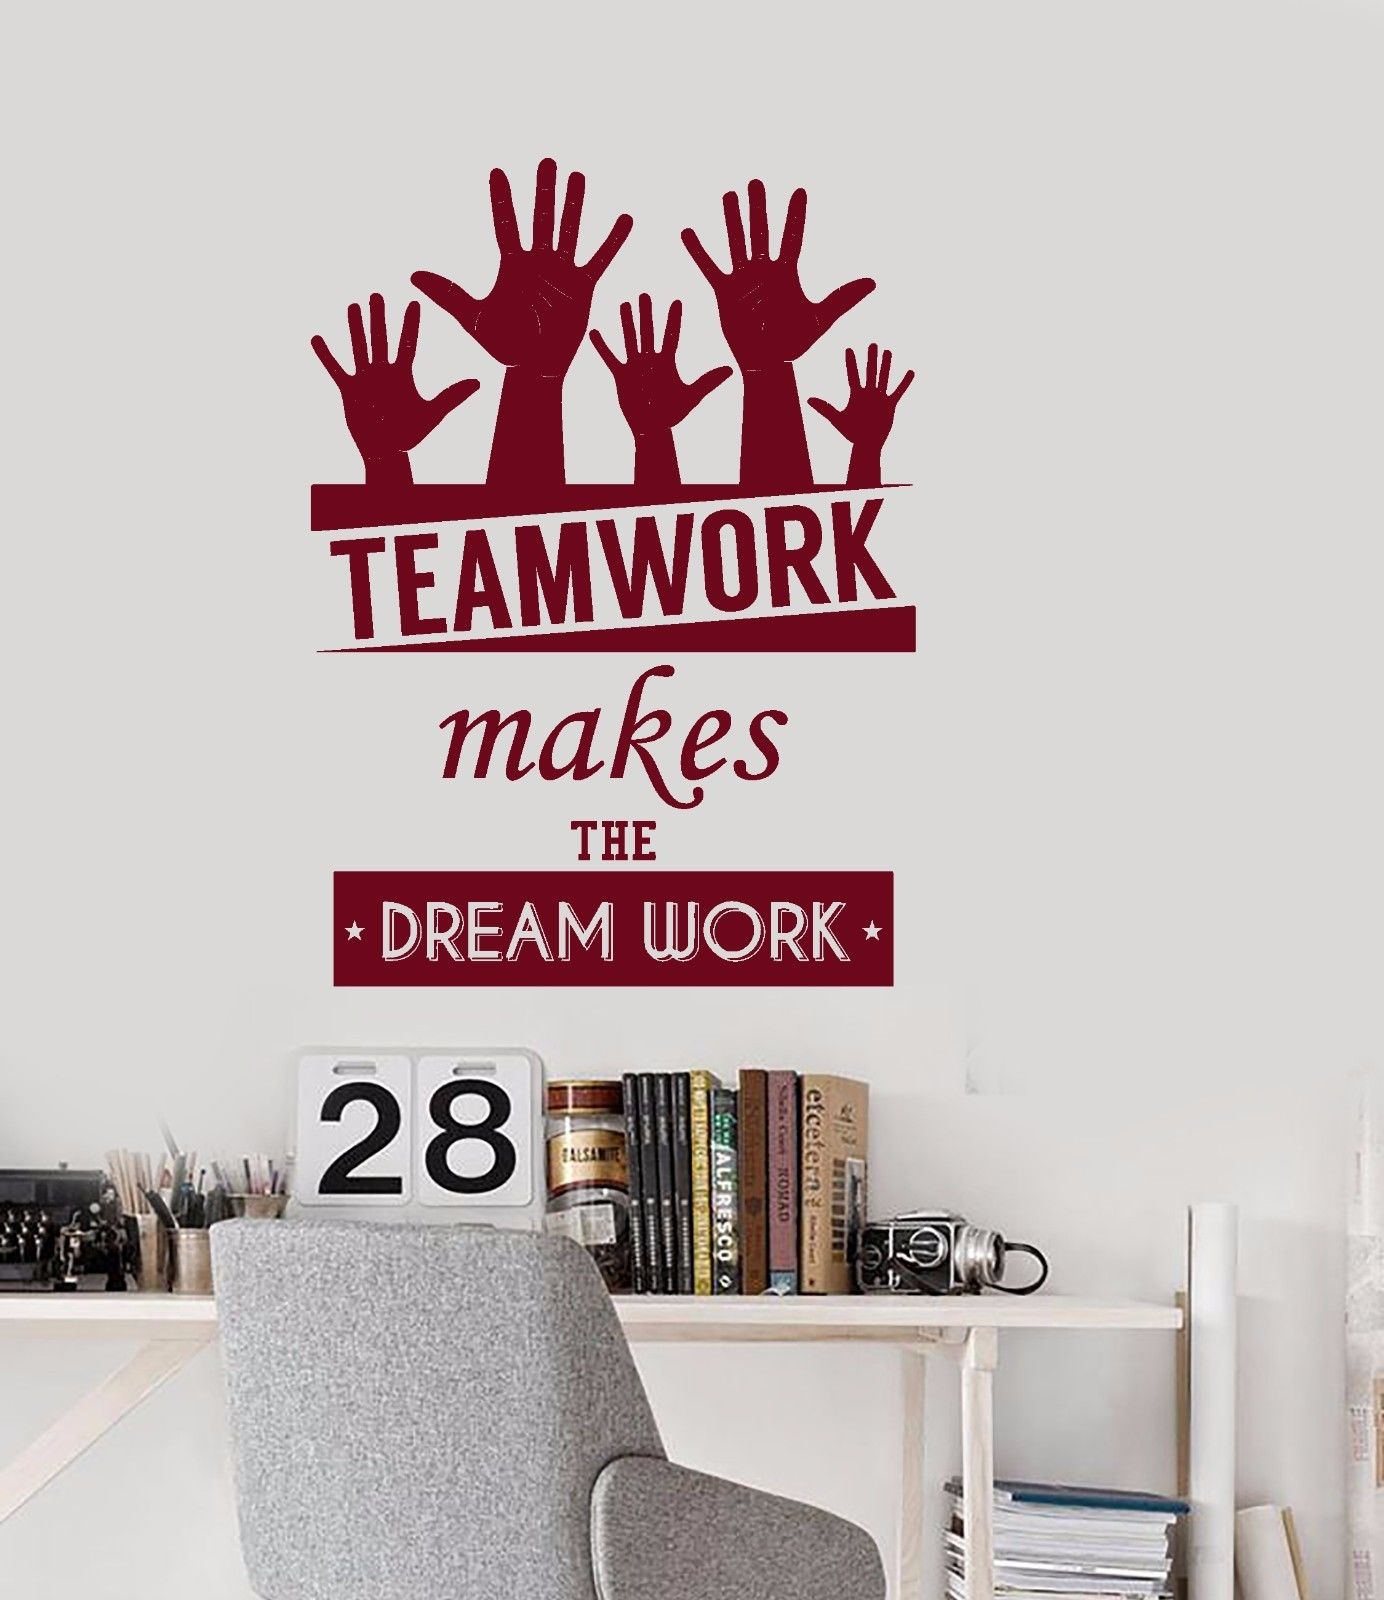 Teamwork Quotes New Wall Vinyl Decal Quotes Teamwork Dream Work Office Inspire